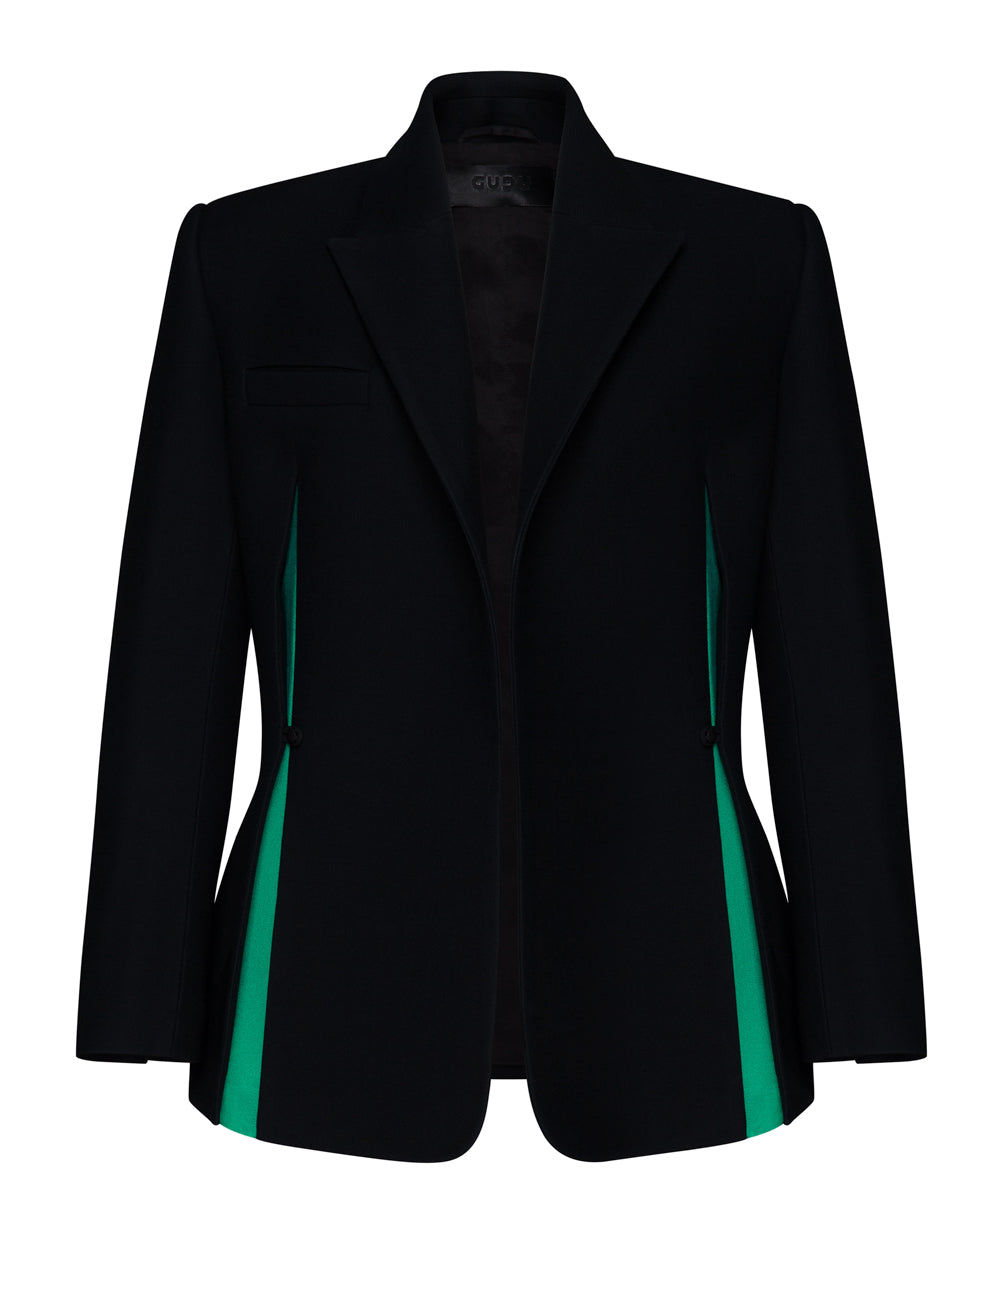 REBELLION BLAZER